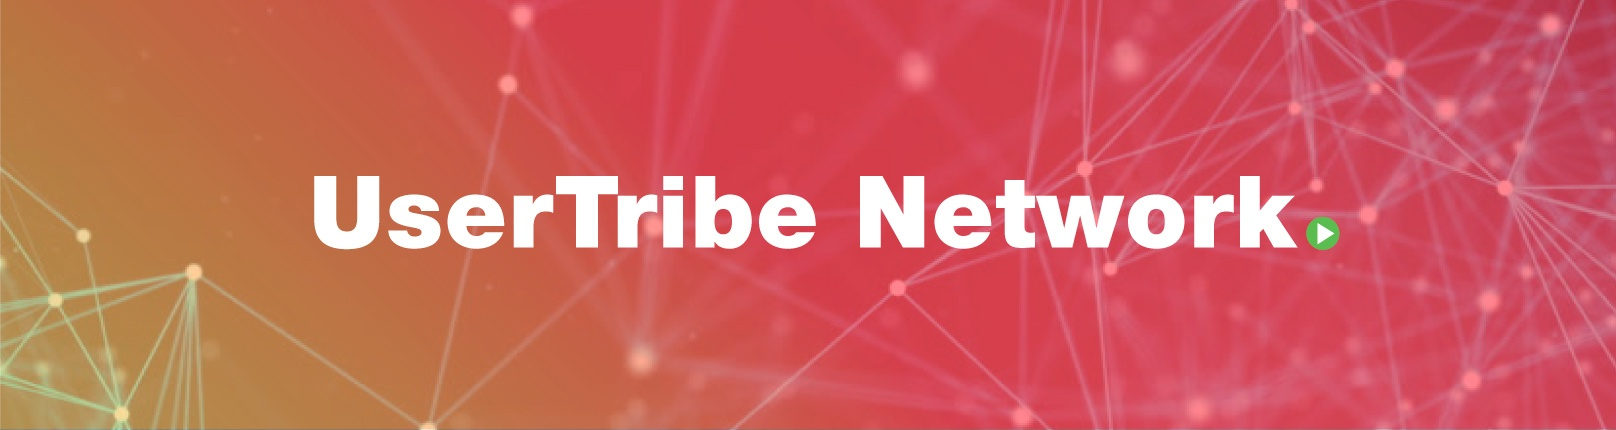 UserTribe Network